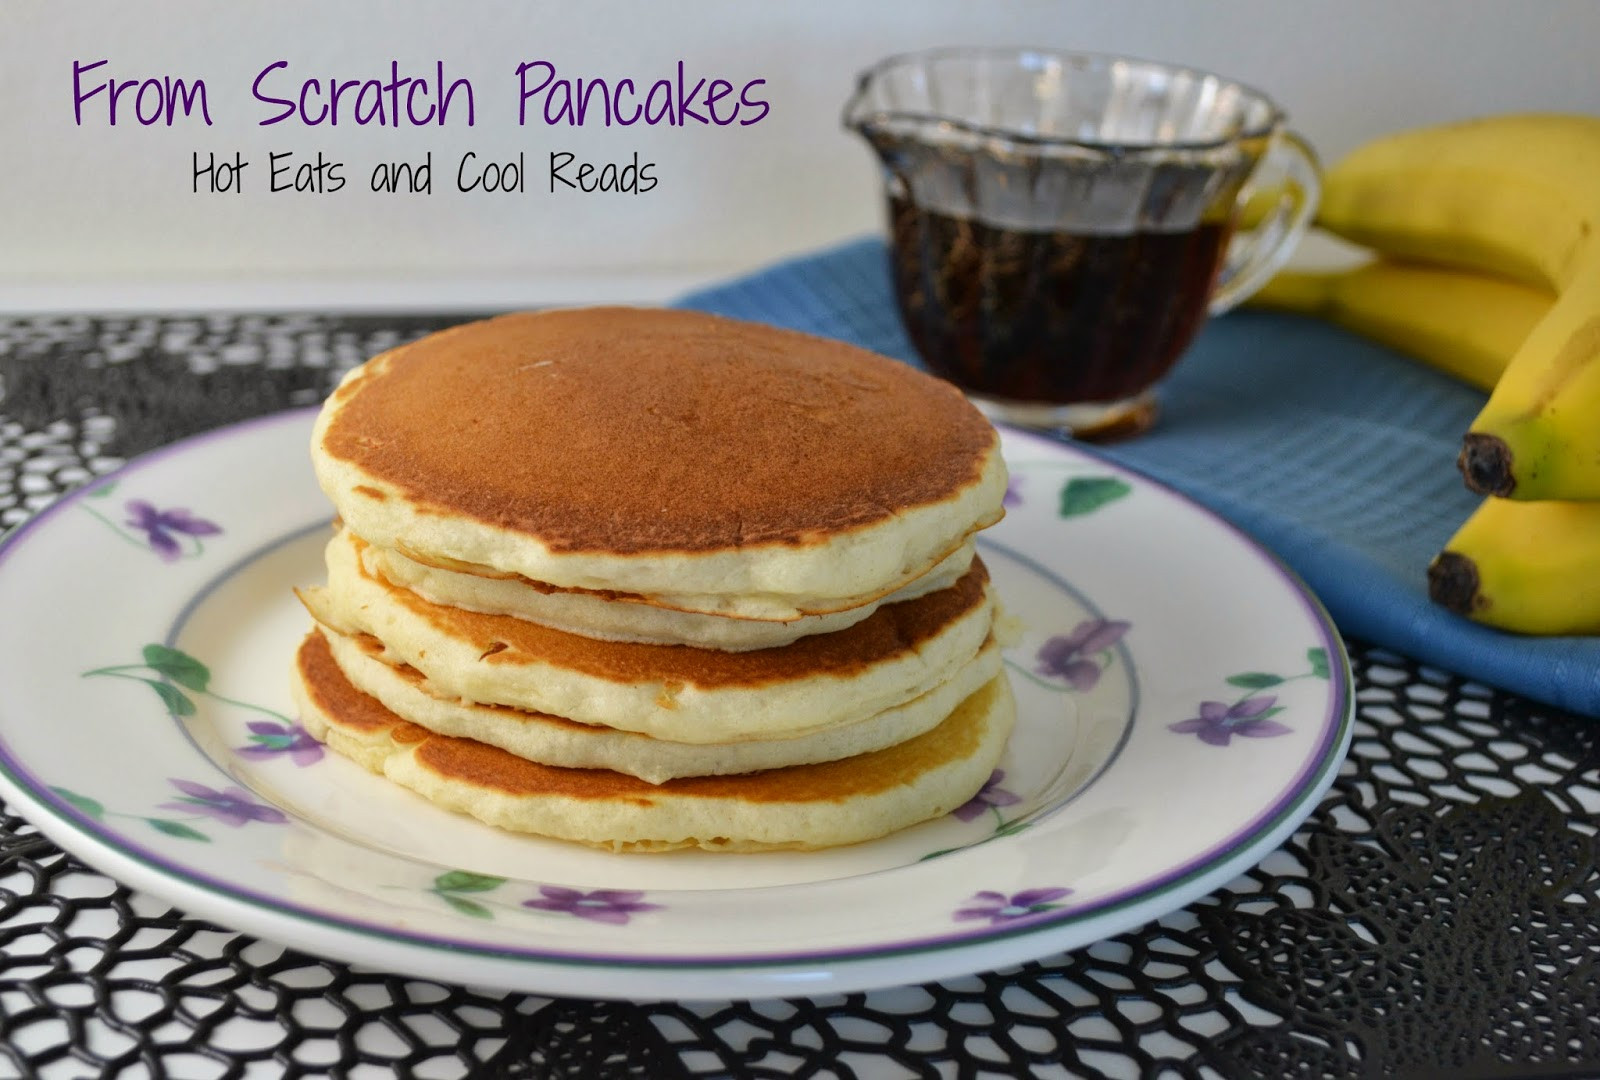 Pancakes From Scratch Recipe  Hot Eats and Cool Reads Strawberries and Cream Crepes Recipe